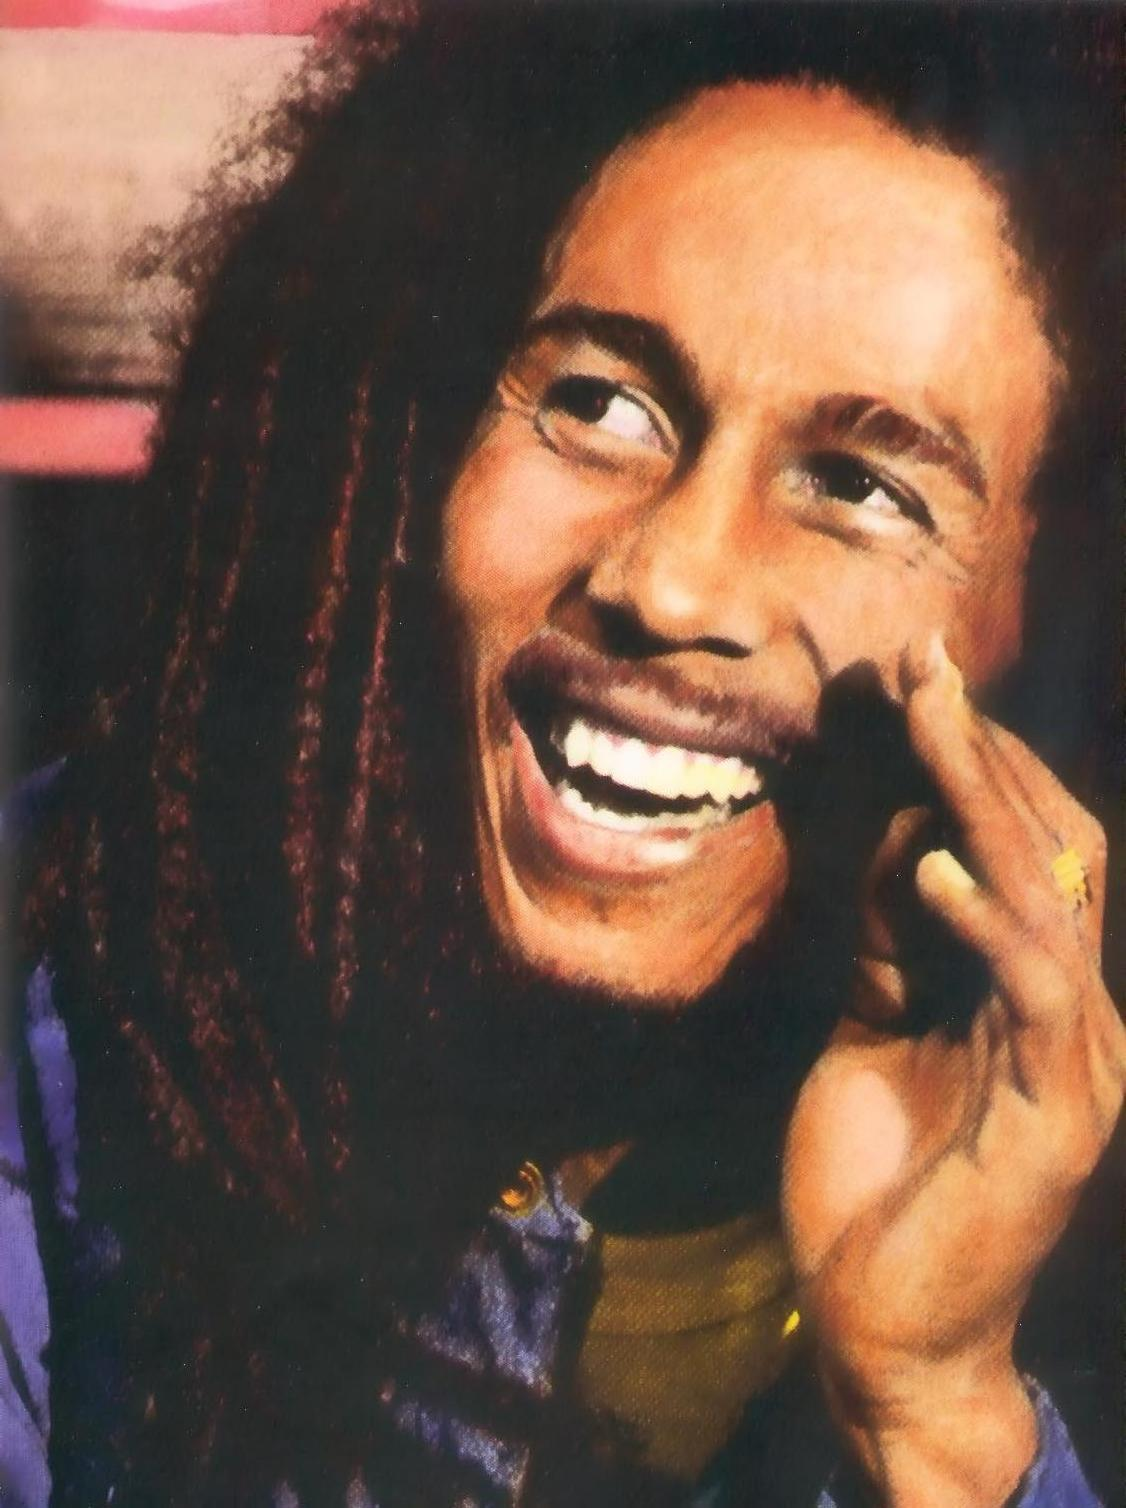 WORLD FAMOUS PEOPLE: Bob Marley